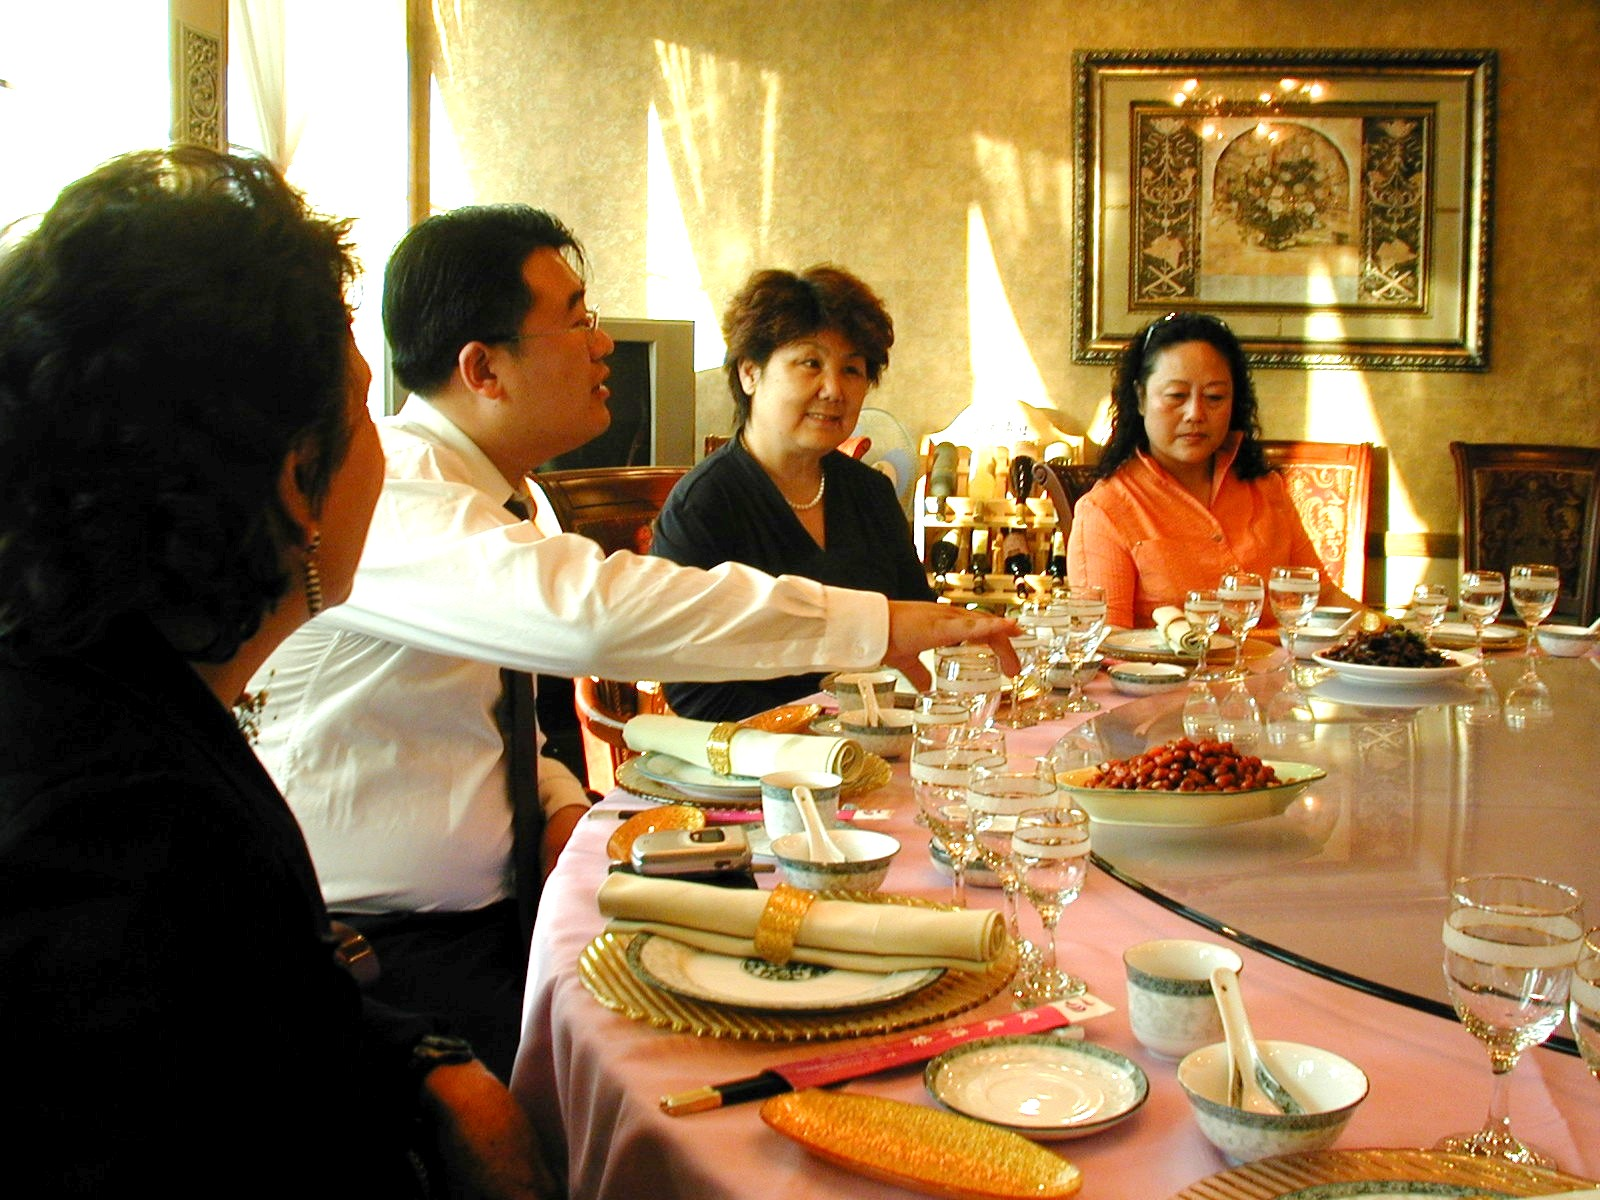 Copy of Banquet after workshop in Qingdao